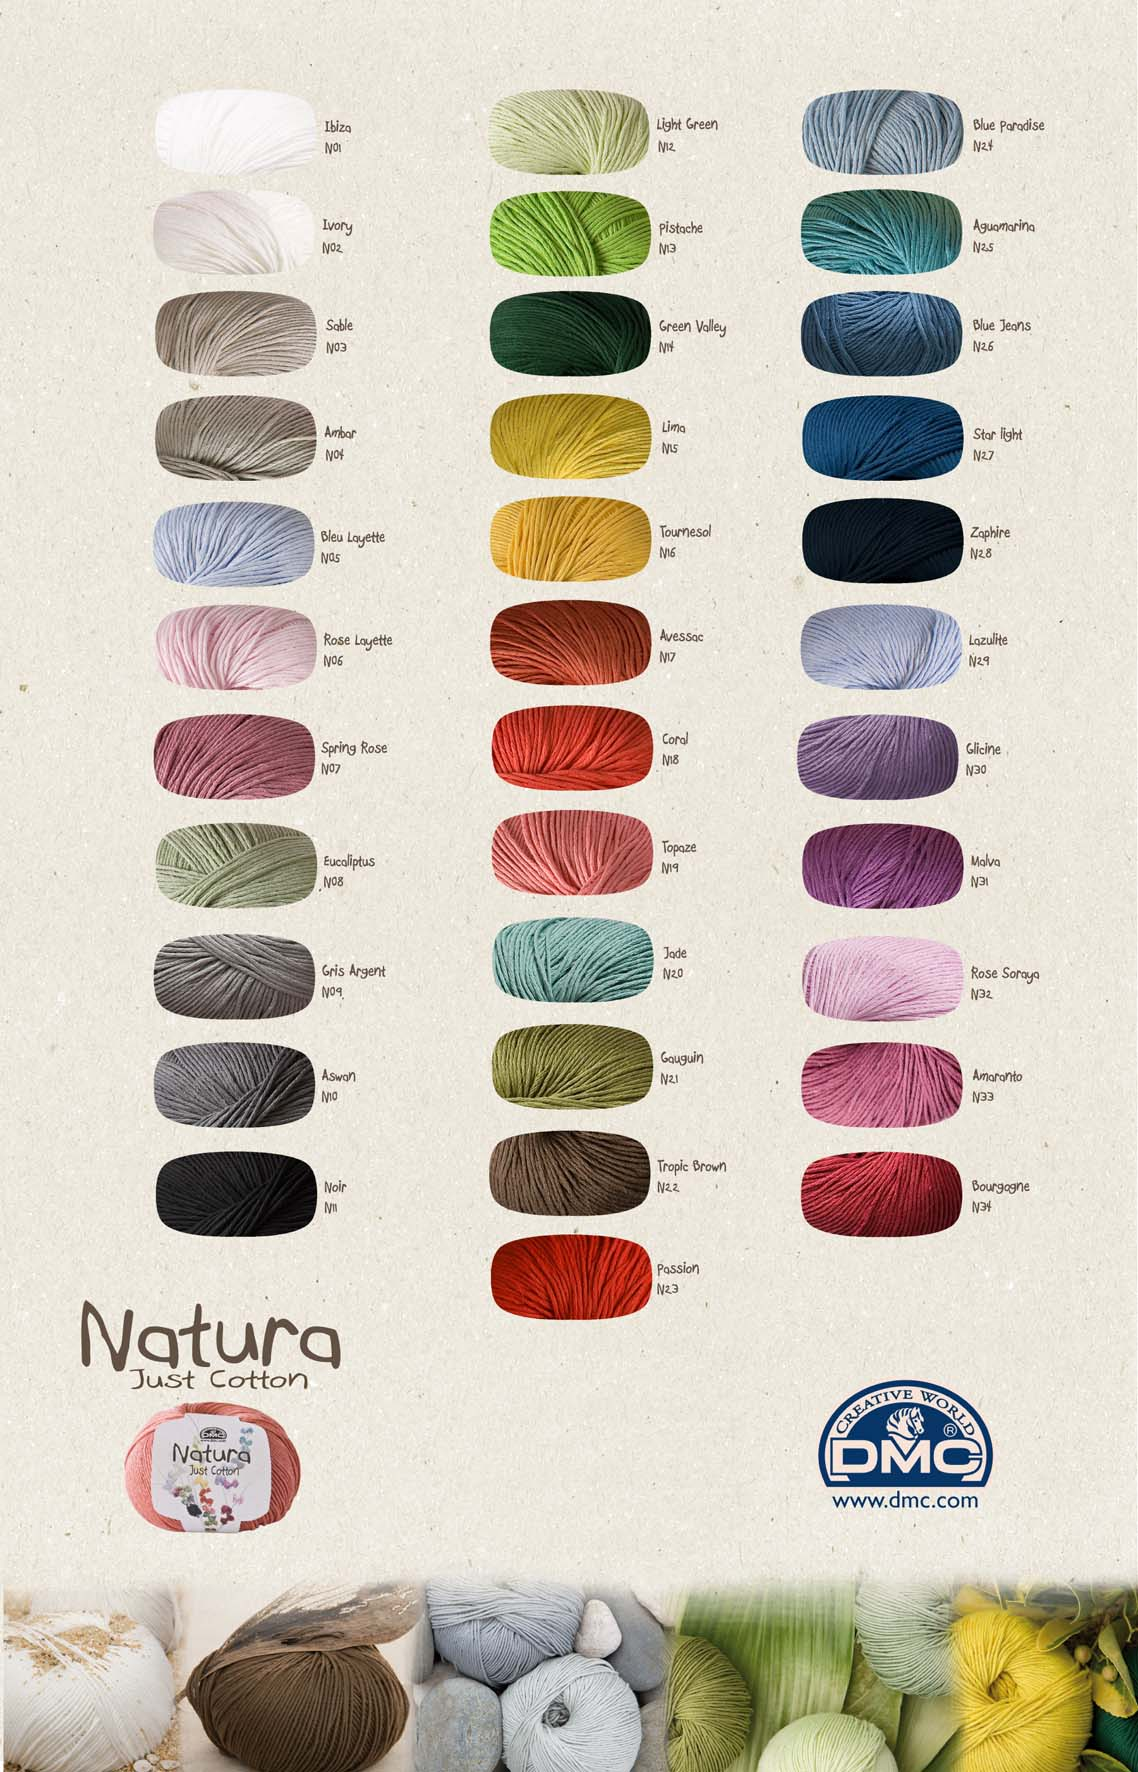 Dmc Natura Just Cotton Create In Stitch